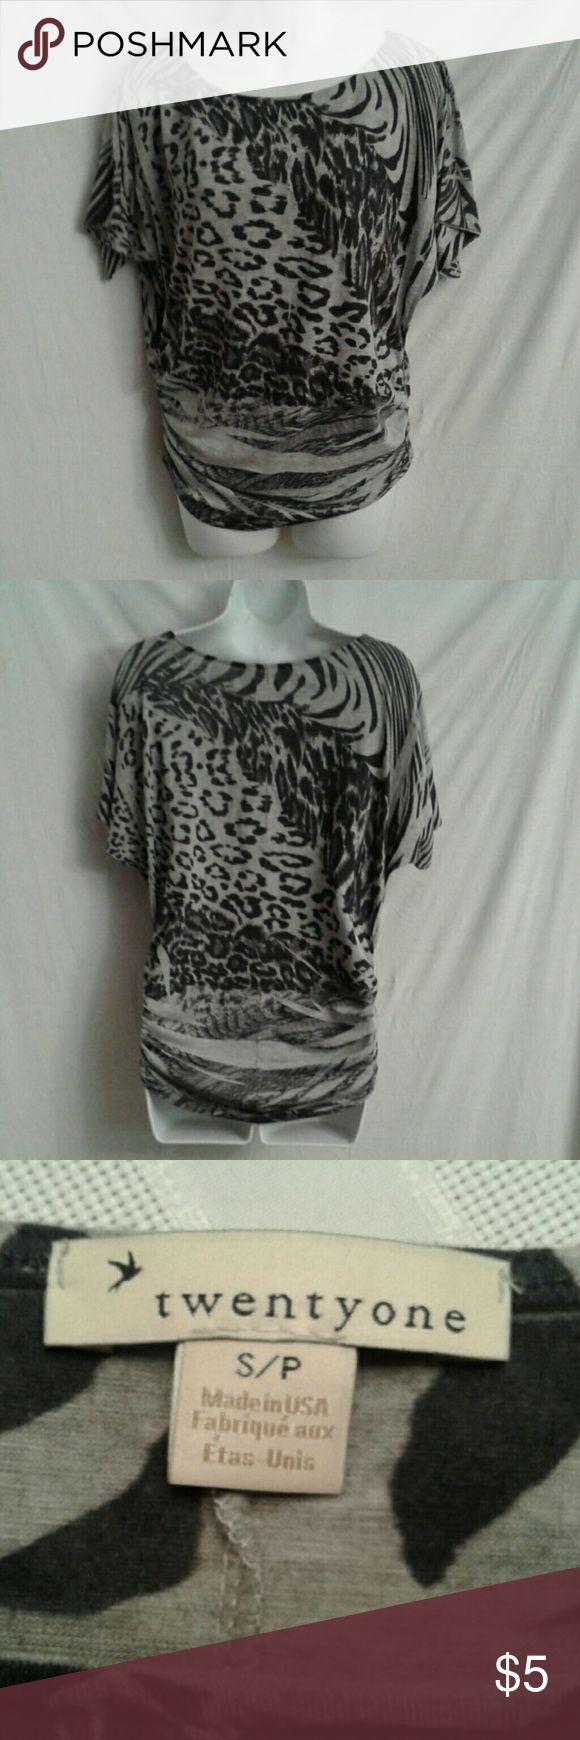 Twentyone black animal print top sz S This is a batwing sleeve, shirred side, black and grey animal print, top in EUC. It is 96/4 poly/spandex blend that is hand wash, line dry. It is a sz S/P. Twentyone Tops Tunics